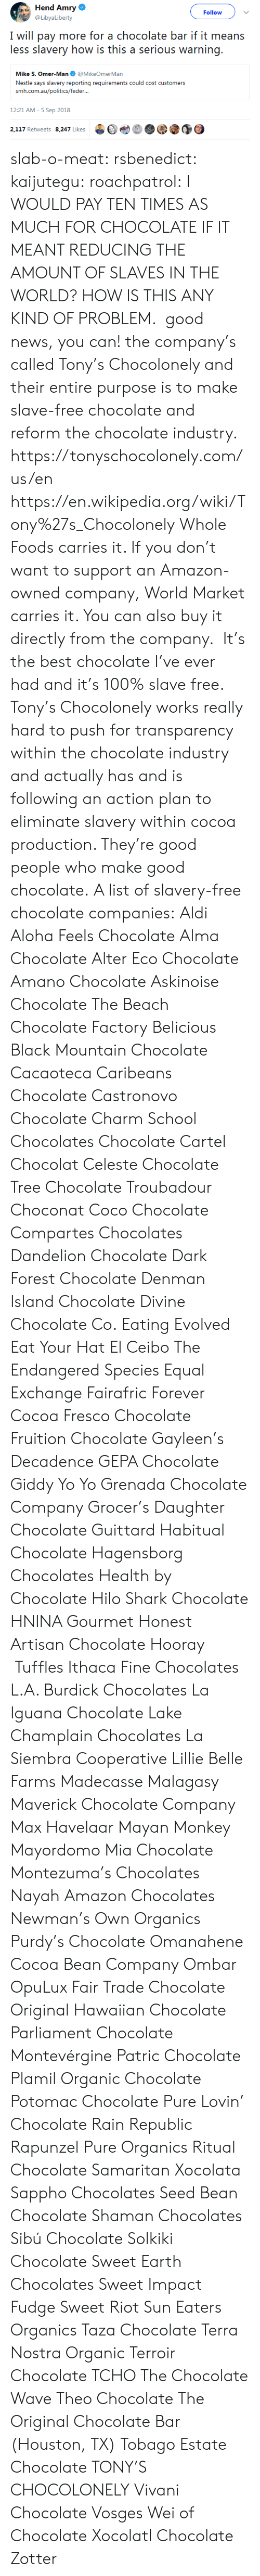 Amazon, Anaconda, and CoCo: Hend Amry  @LibyaLiberty  Follow  I will pay more for a chocolate bar if it means  less slavery how is this a serious warning.  Mike S. Omer-Man@MikeOmerMan  Nestle says slavery reporting requirements could cost customers  srmi.exiiauafoliiicxi/icxlkir...  12:21 AM-5 Sep 2018  2,117 Retweets 8.247 Likes  bet  @③ slab-o-meat: rsbenedict:  kaijutegu:  roachpatrol: I WOULD PAY TEN TIMES AS MUCH FOR CHOCOLATE IF IT MEANT REDUCING THE AMOUNT OF SLAVES IN THE WORLD? HOW IS THIS ANY KIND OF PROBLEM. good news, you can! the company's called Tony's Chocolonely and their entire purpose is to make slave-free chocolate and reform the chocolate industry. https://tonyschocolonely.com/us/en https://en.wikipedia.org/wiki/Tony%27s_Chocolonely Whole Foods carries it. If you don't want to support an Amazon-owned company, World Market carries it. You can also buy it directly from the company. It's the best chocolate I've ever hadand it's 100% slave free. Tony's Chocolonely works really hard to push for transparency within the chocolate industry and actually has and is following an action plan to eliminate slavery within cocoa production. They're good people who make good chocolate.  A list of slavery-free chocolate companies:  Aldi  Aloha Feels Chocolate  Alma Chocolate  Alter Eco Chocolate  Amano Chocolate  Askinoise Chocolate  The Beach Chocolate Factory  Belicious  Black Mountain Chocolate  Cacaoteca  Caribeans Chocolate  Castronovo Chocolate  Charm School Chocolates  Chocolate Cartel  Chocolat Celeste  Chocolate Tree  Chocolate Troubadour  Choconat  Coco Chocolate  Compartes Chocolates  Dandelion Chocolate  Dark Forest Chocolate  Denman Island Chocolate  Divine Chocolate Co.  Eating Evolved  Eat Your Hat  El Ceibo  The Endangered Species  Equal Exchange  Fairafric  Forever Cocoa  Fresco Chocolate  Fruition Chocolate  Gayleen's Decadence  GEPA Chocolate  Giddy Yo Yo  Grenada Chocolate Company  Grocer's Daughter Chocolate  Guittard  Habitual Chocolate  Hag